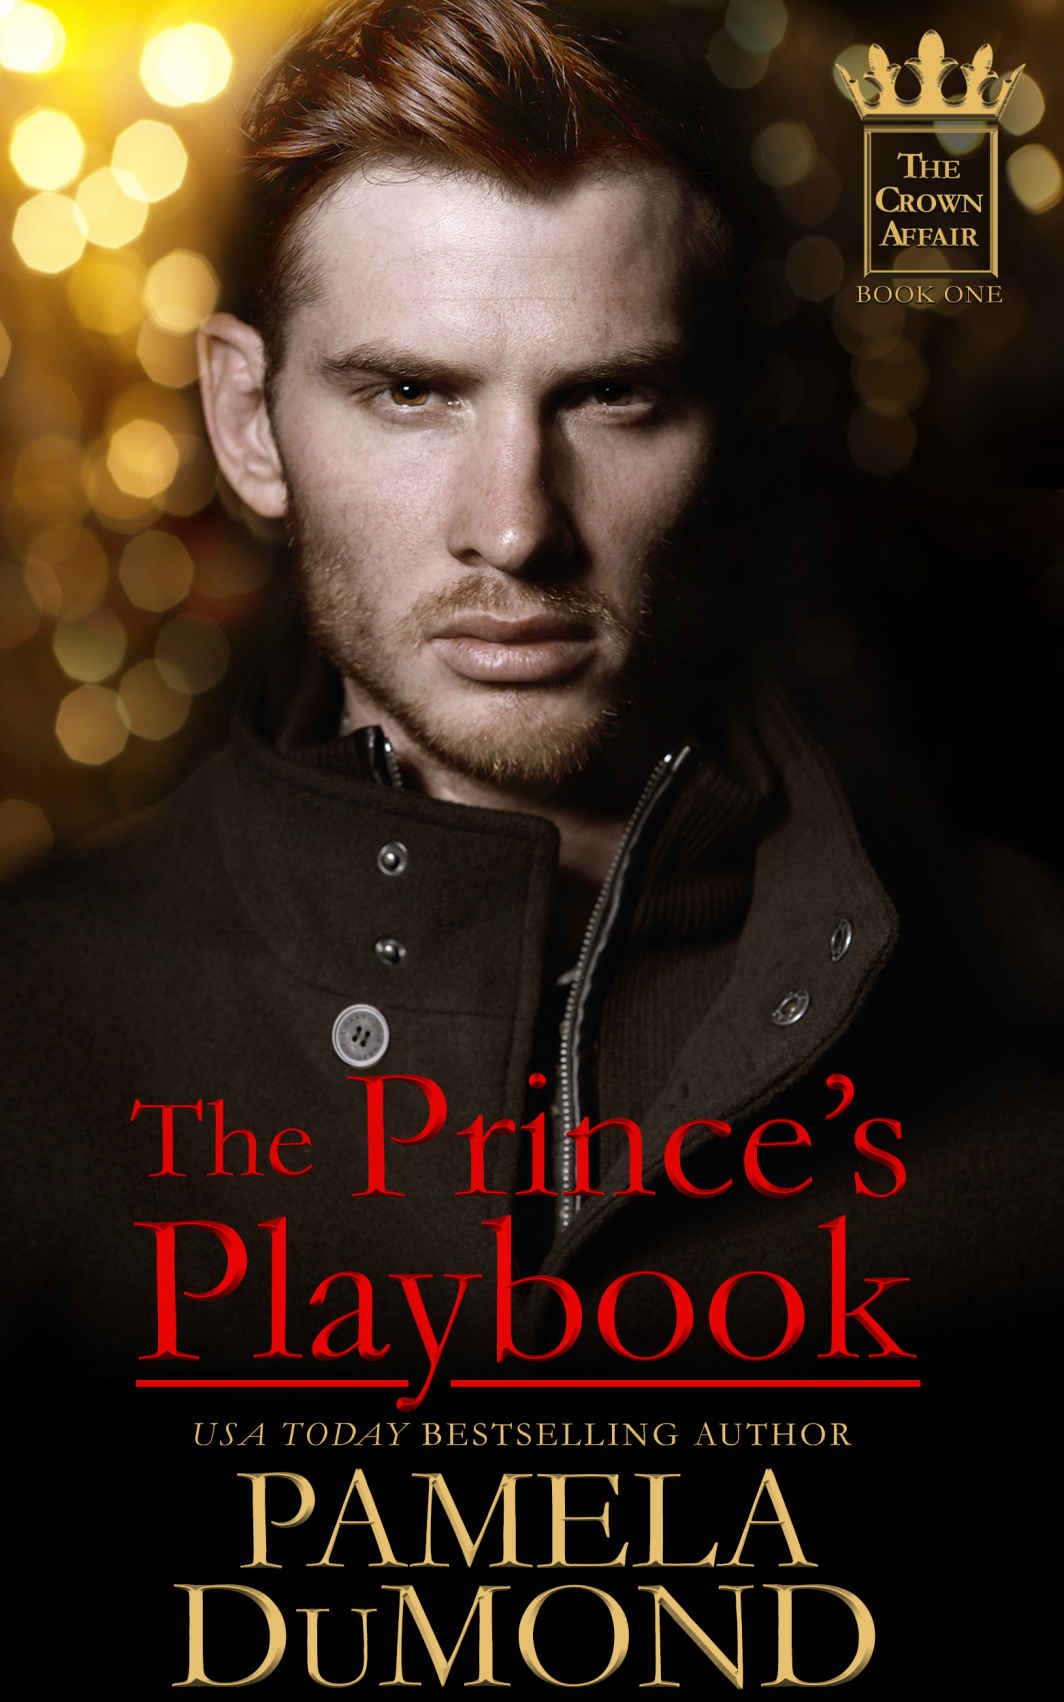 THE PRINCE'S PLAYBOOK